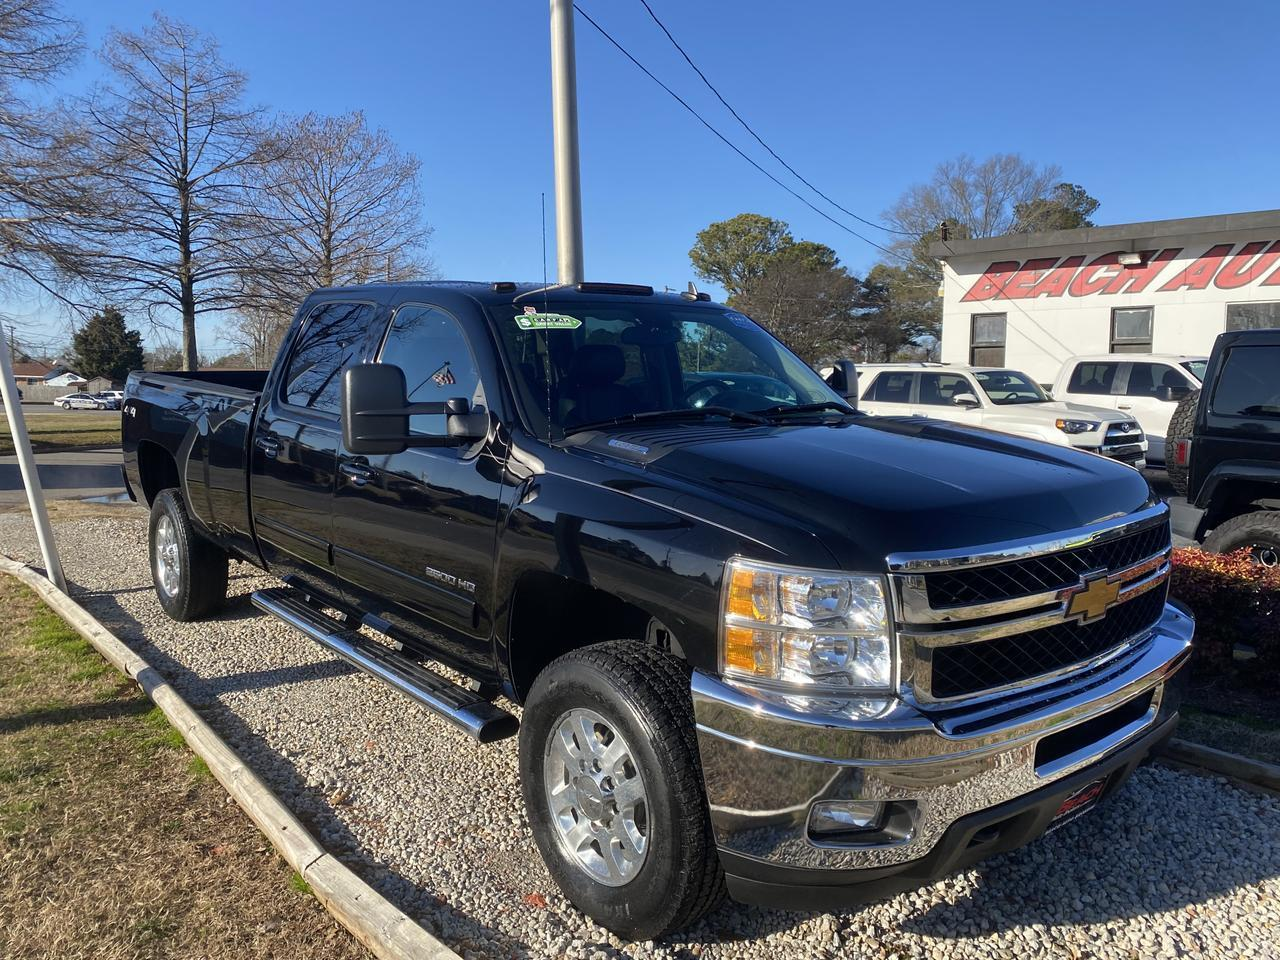 2013 CHEVROLET SILVERADO HD 2500 LTZ CREW CAB 4X4, WARRANTY, LEATHER, NAV, AUX/USB PORT, BACKUP CAM, PARKING SENSORS,1 OWNER! Norfolk VA